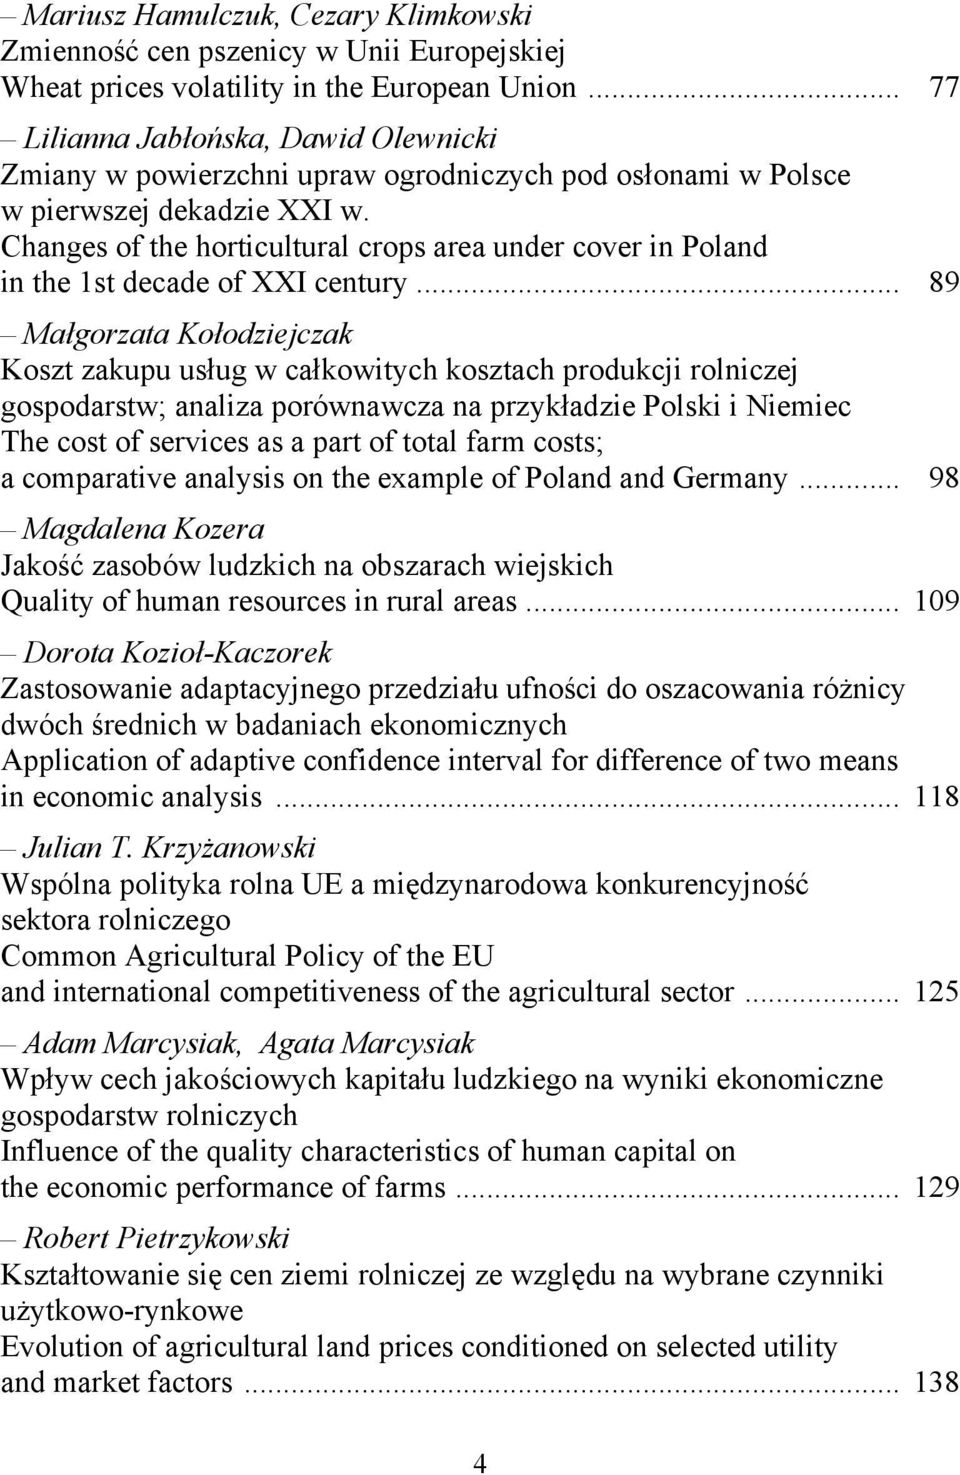 Changes of the horticultural crops area under cover in Poland in the 1st decade of XXI century.